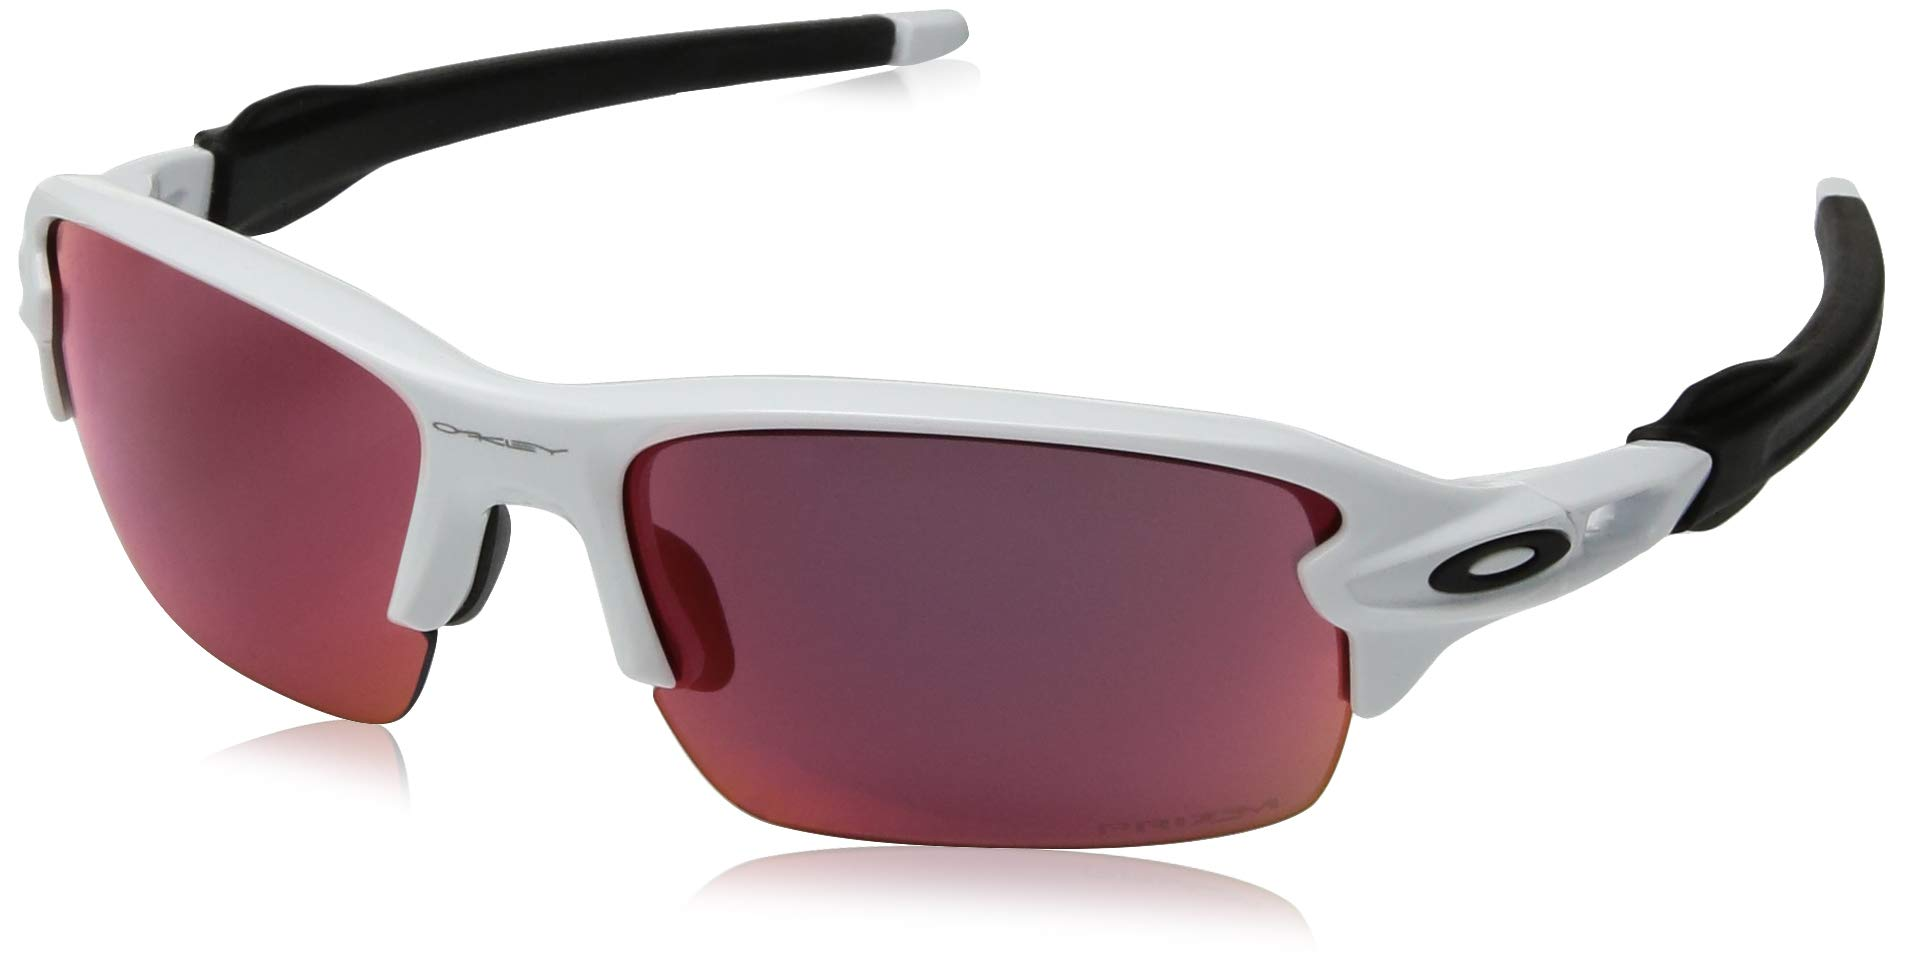 Oakley Boys' Flak Xs Iridium Rectangular Sunglasses POLISHED WHITE 59.0 mm